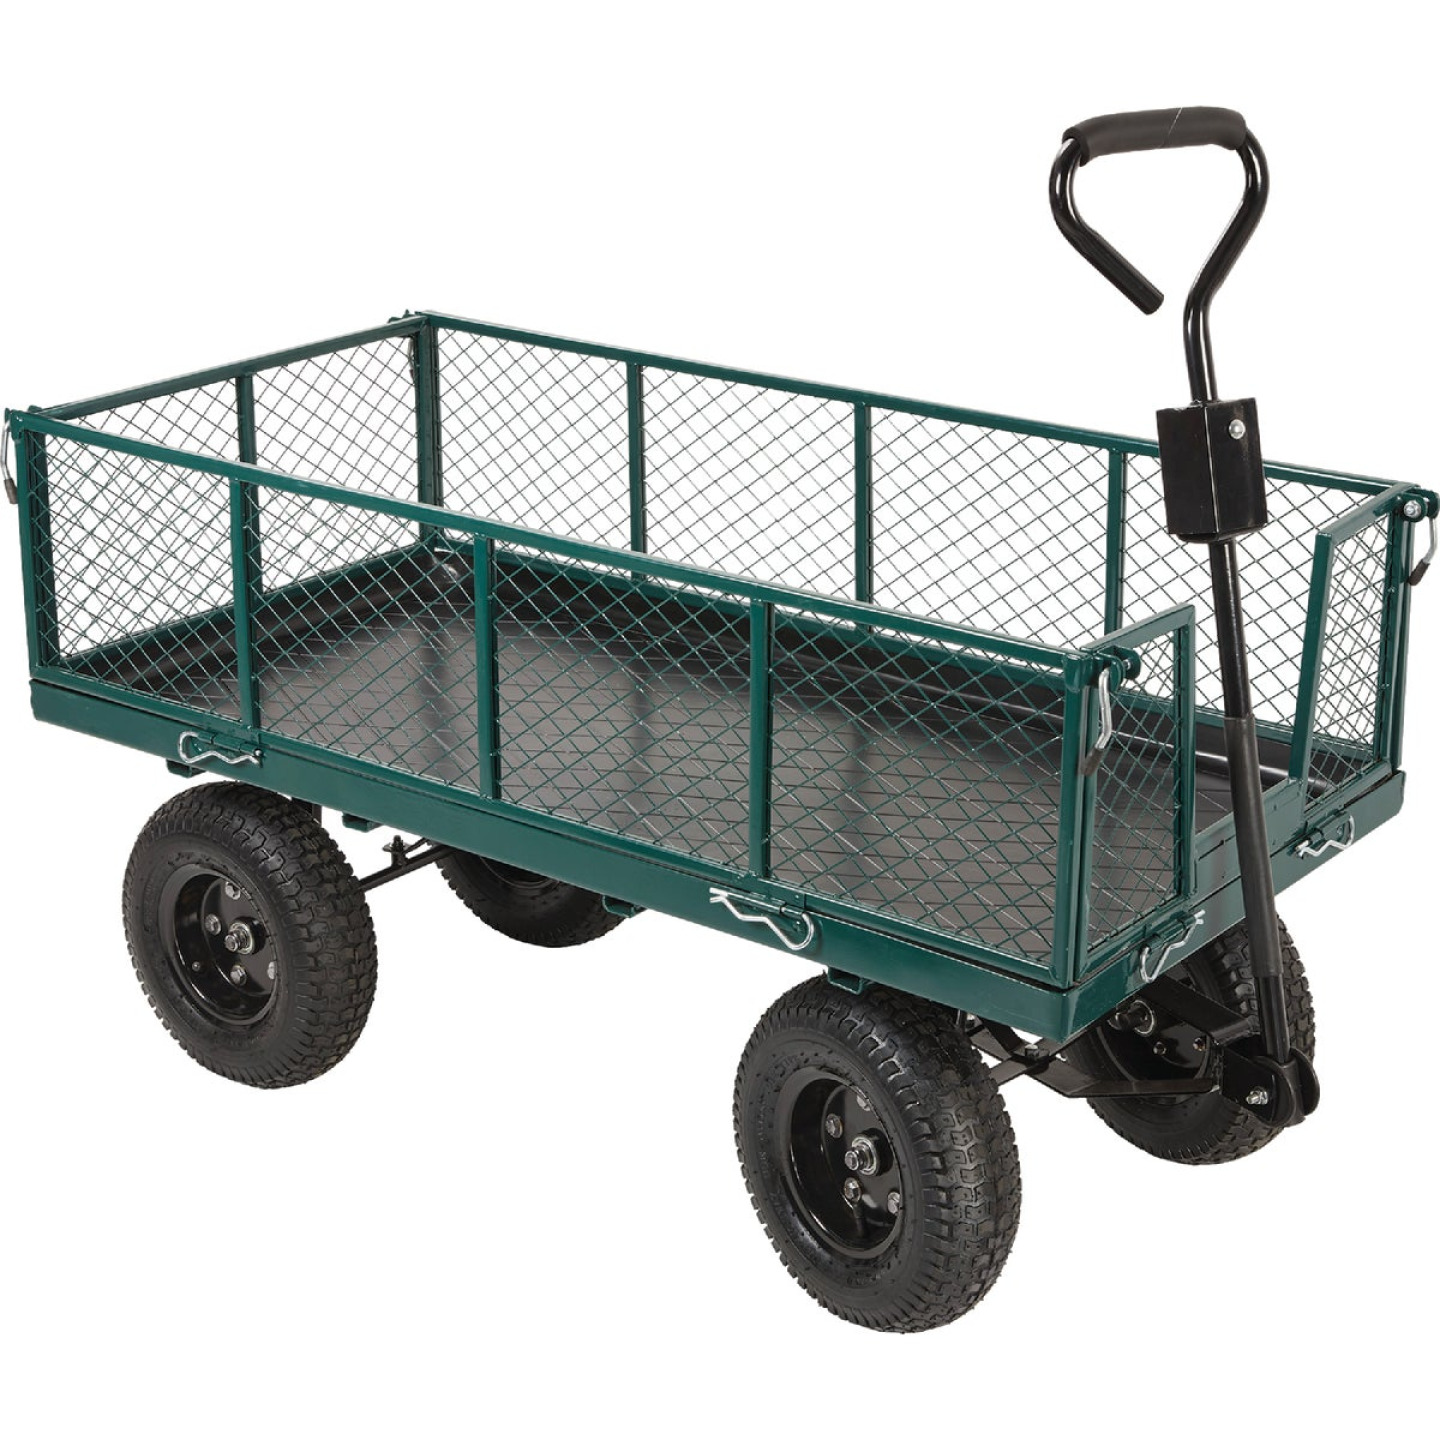 Best Garden 1000 Lb. Steel Garden Cart with Collapsible Sides Image 1